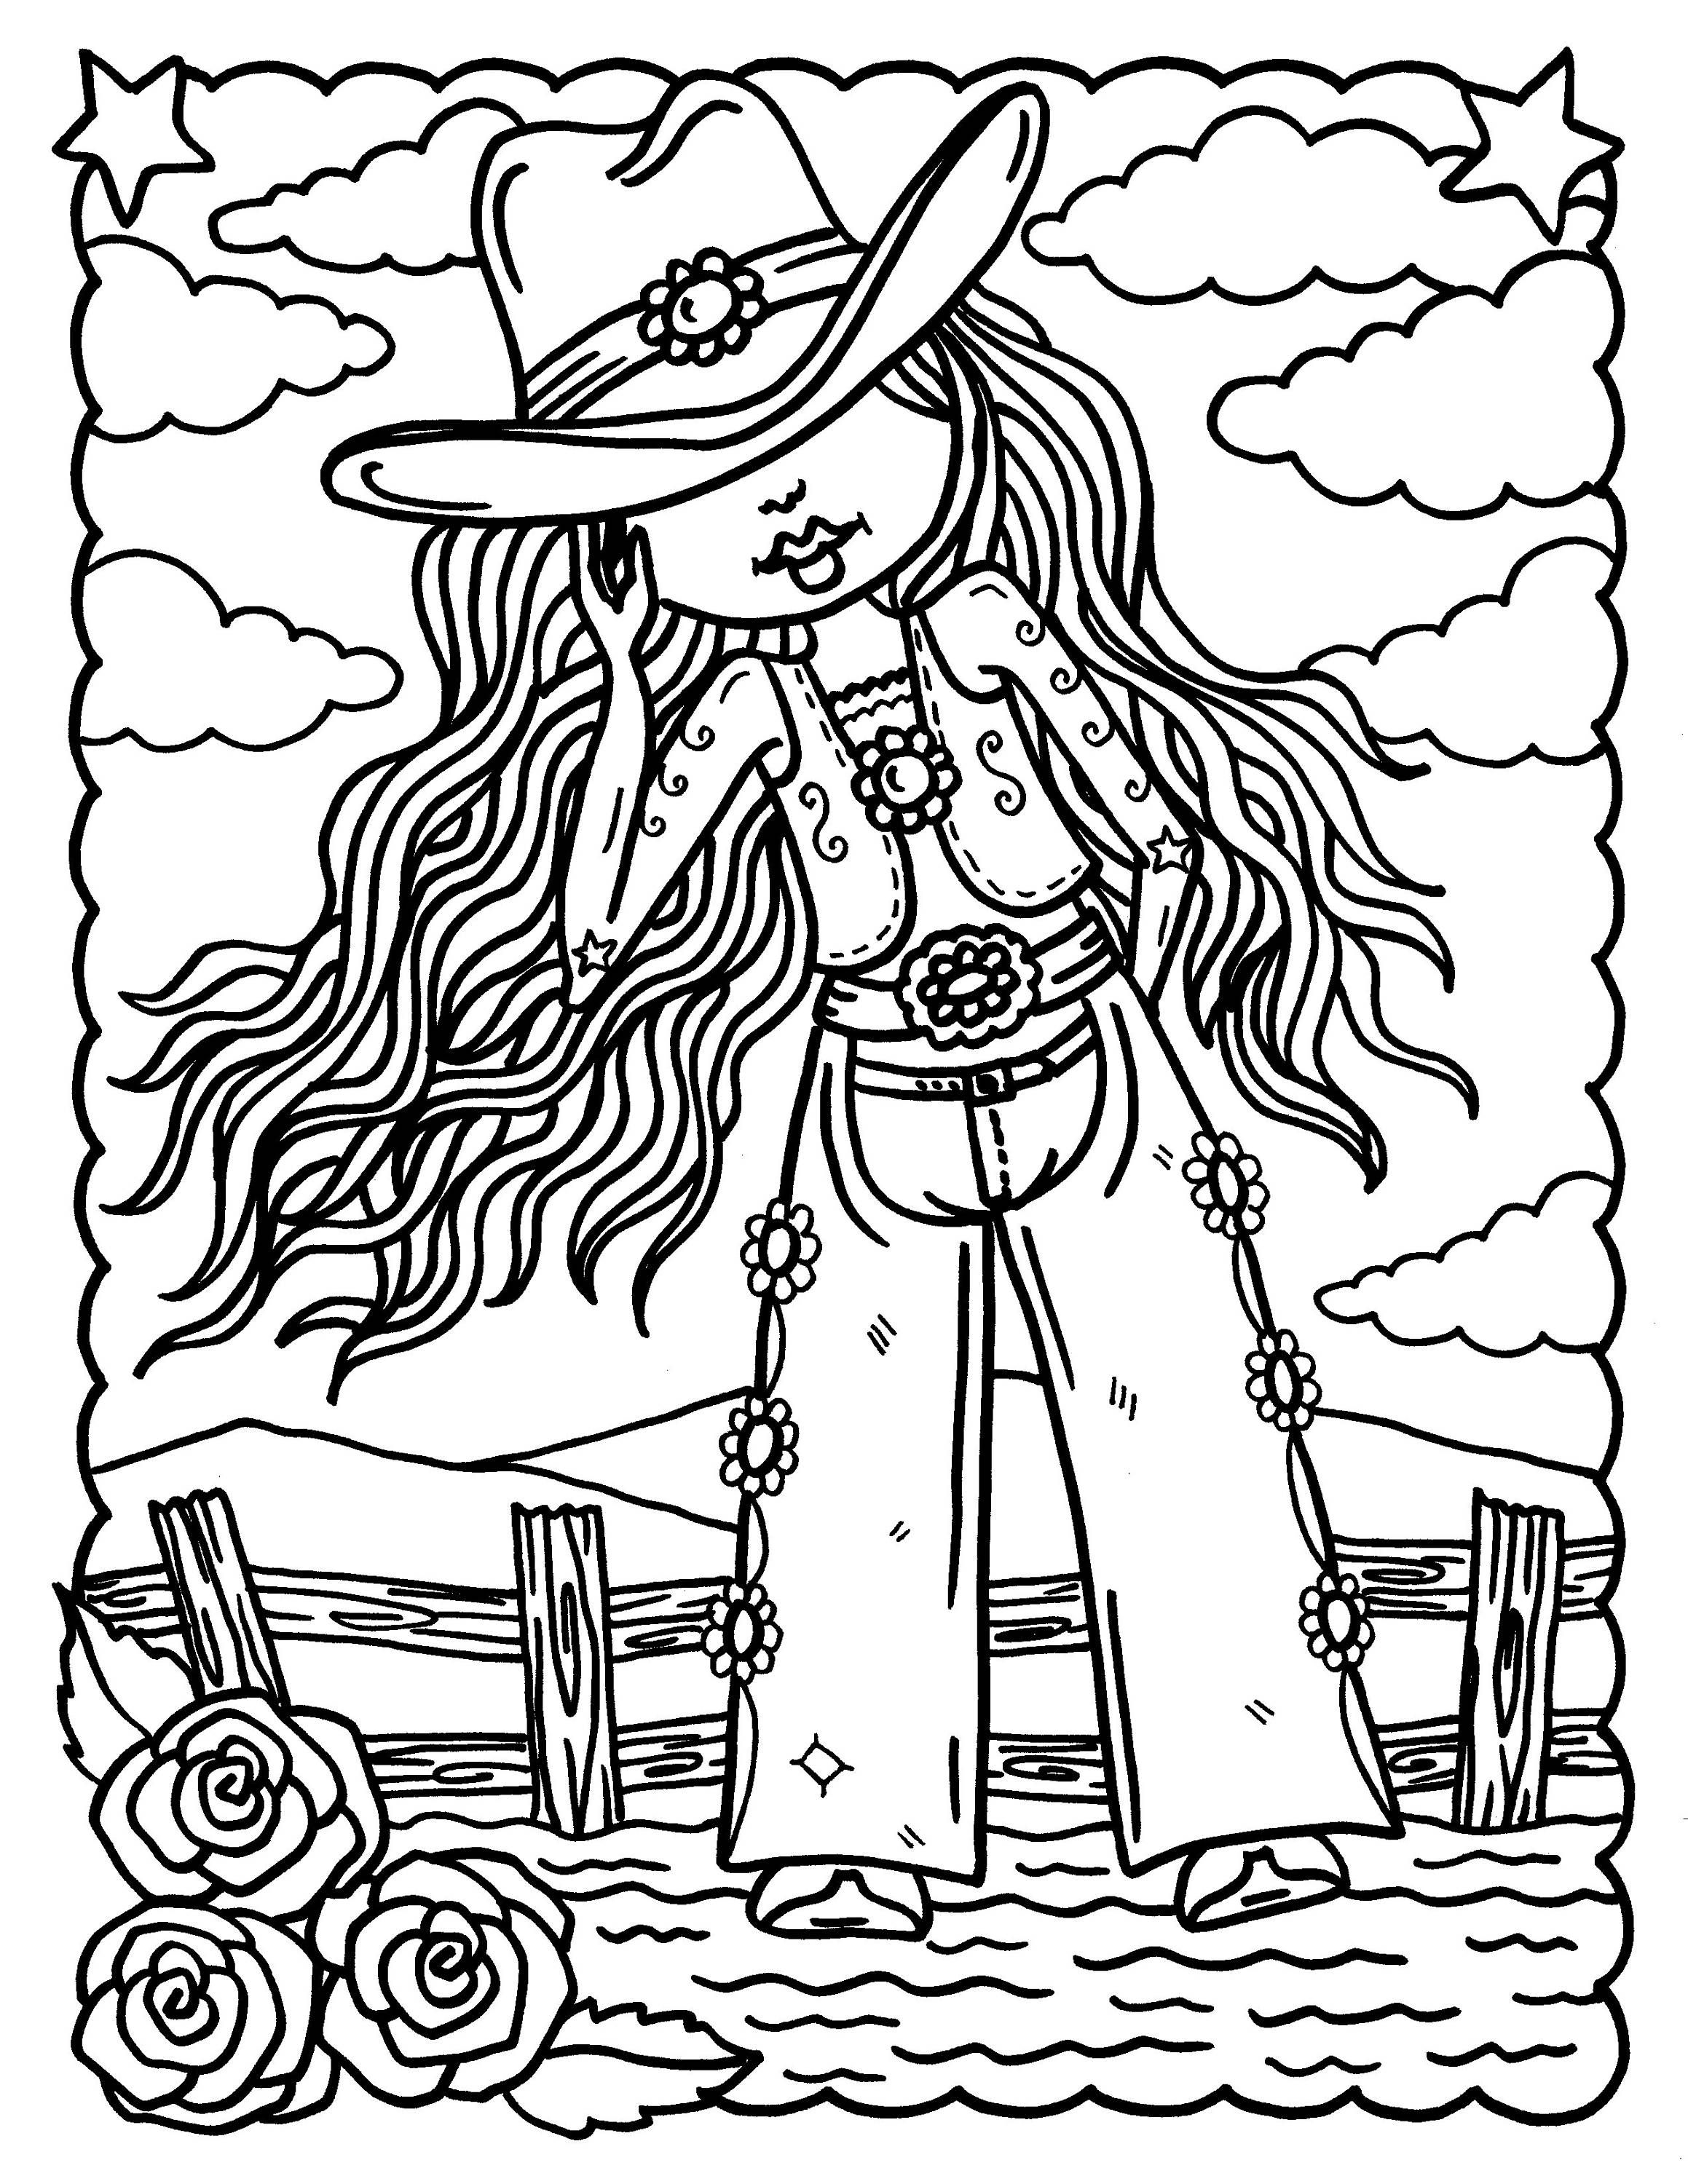 Digital Coloring Book Downloadable Cowgirls And Indians